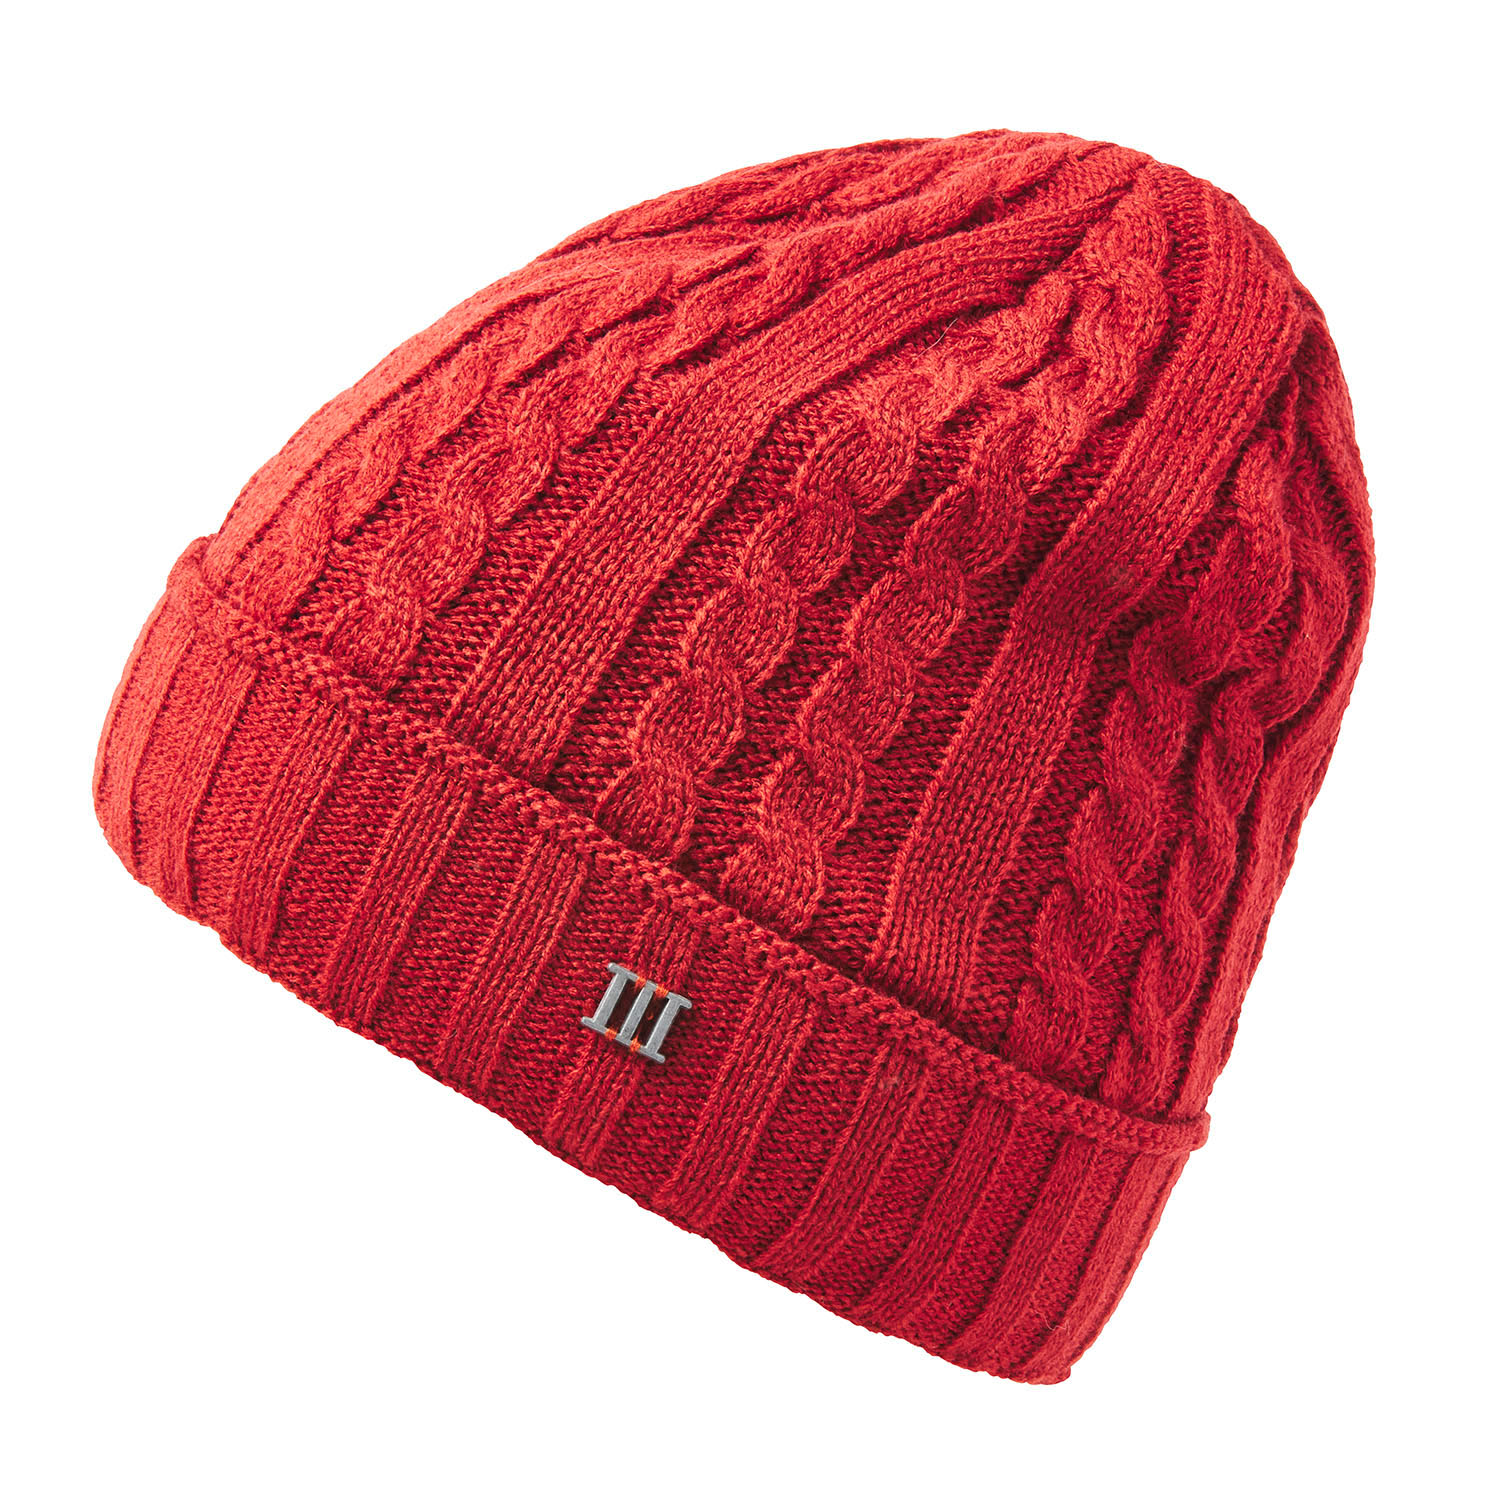 ERRIC | Cable knitted beanie in red